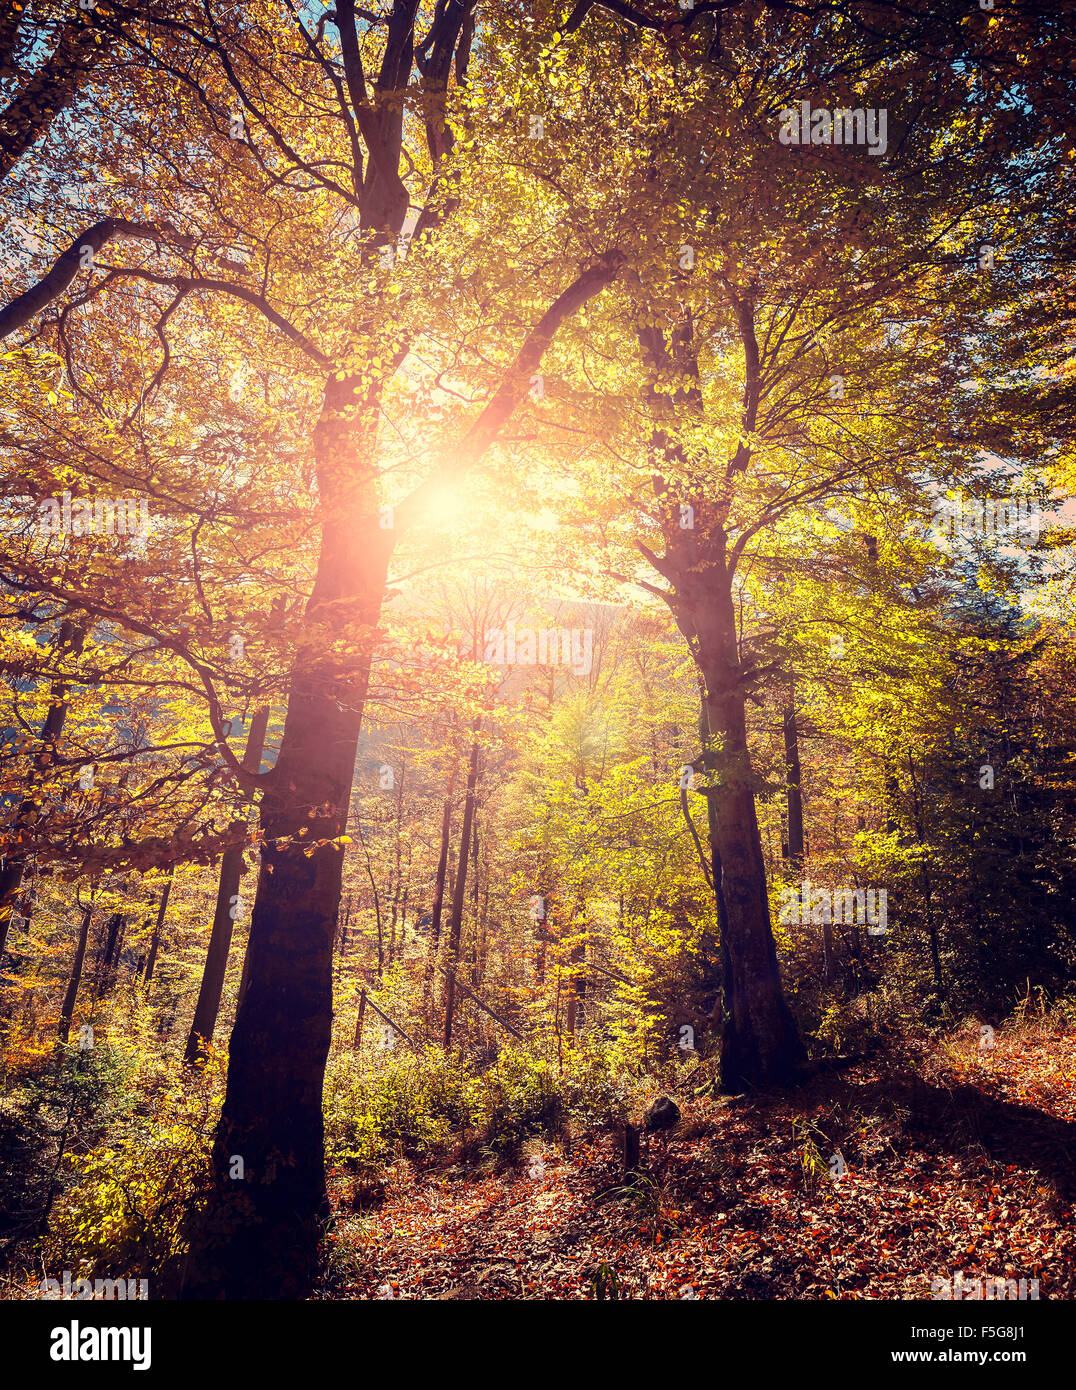 Retro stylized picture of autumnal forest. - Stock Image